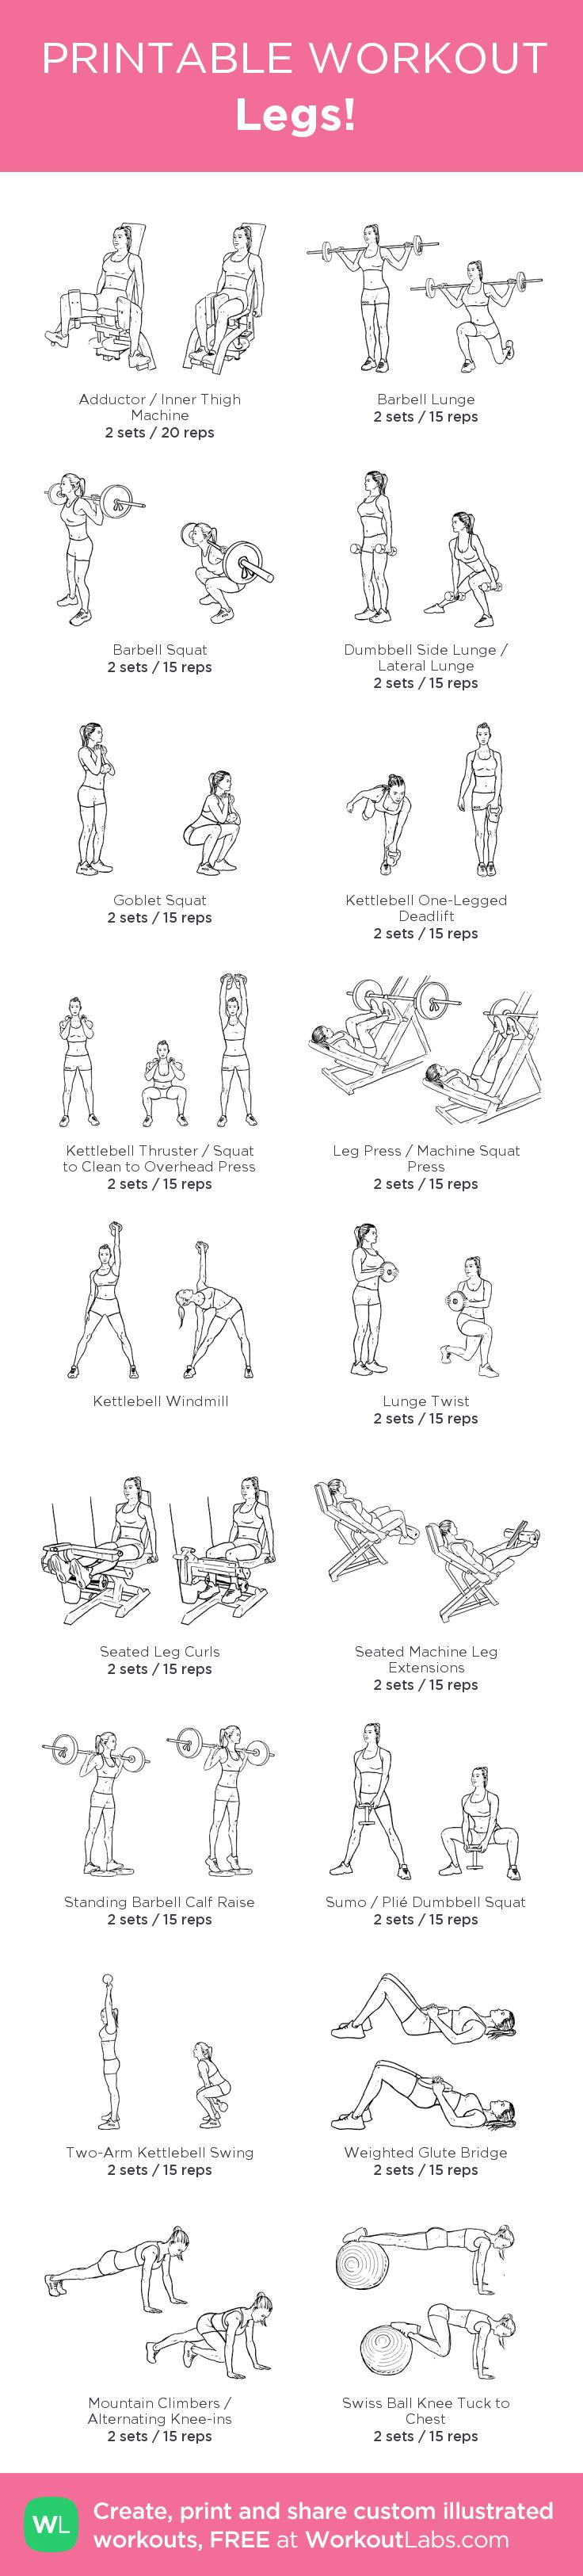 Legs! – my custom workout created at WorkoutLabs.com • Click through to download as printable PDF! #customworkout